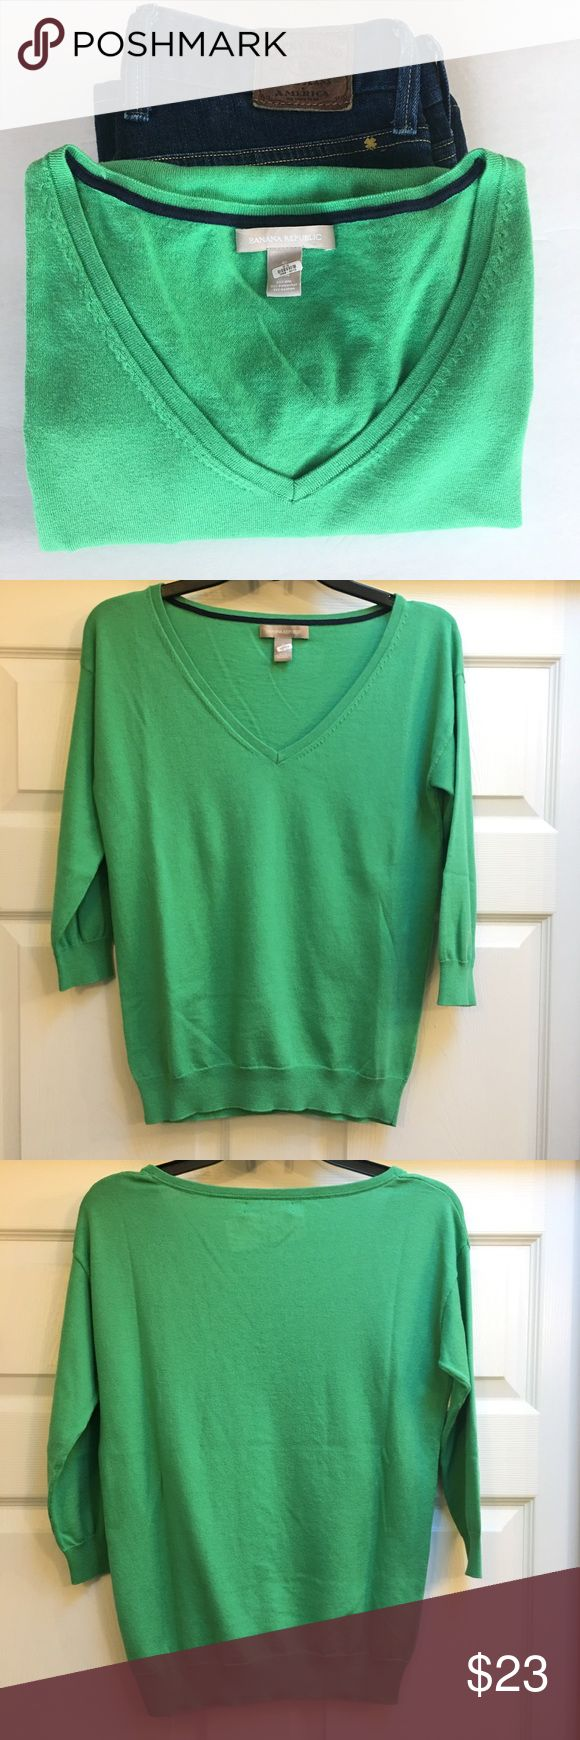 Banana Republic Sweater Soft green v neck pullover. This is a classic sweater that can be worn any time of the year. Silk blend makes this super soft and comfortable. Size S. Very good condition.    🚫 No Trades 💯% Authentic  💵 Offers welcome 💰Bundled discount 📦 Ships in 1-2 days Banana Republic Sweaters V-Necks